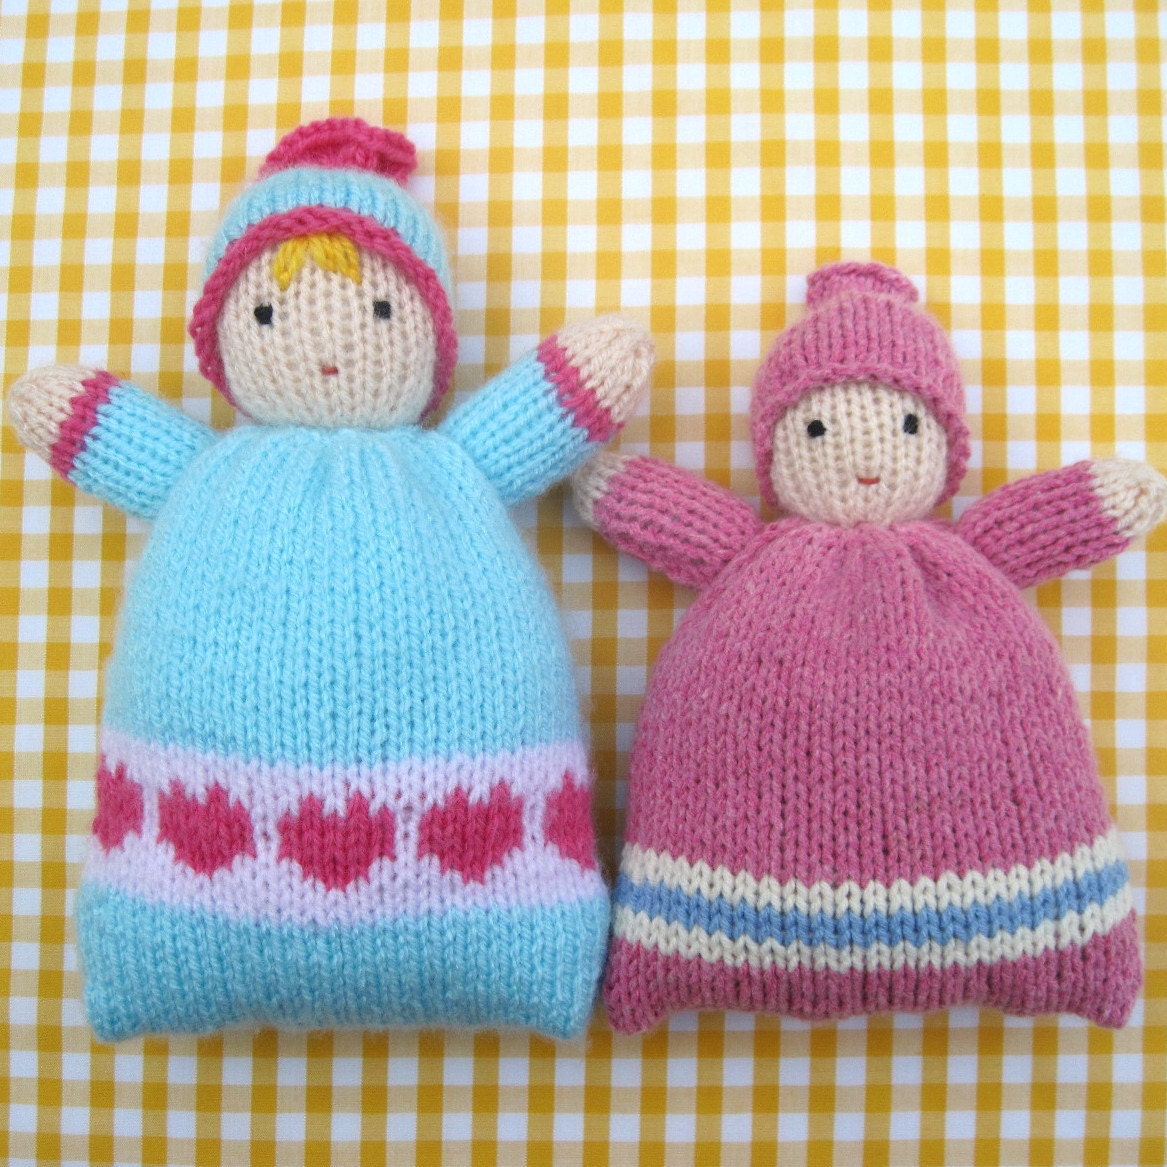 Little Sweethearts Baby Bunting toy doll in 2 sizes